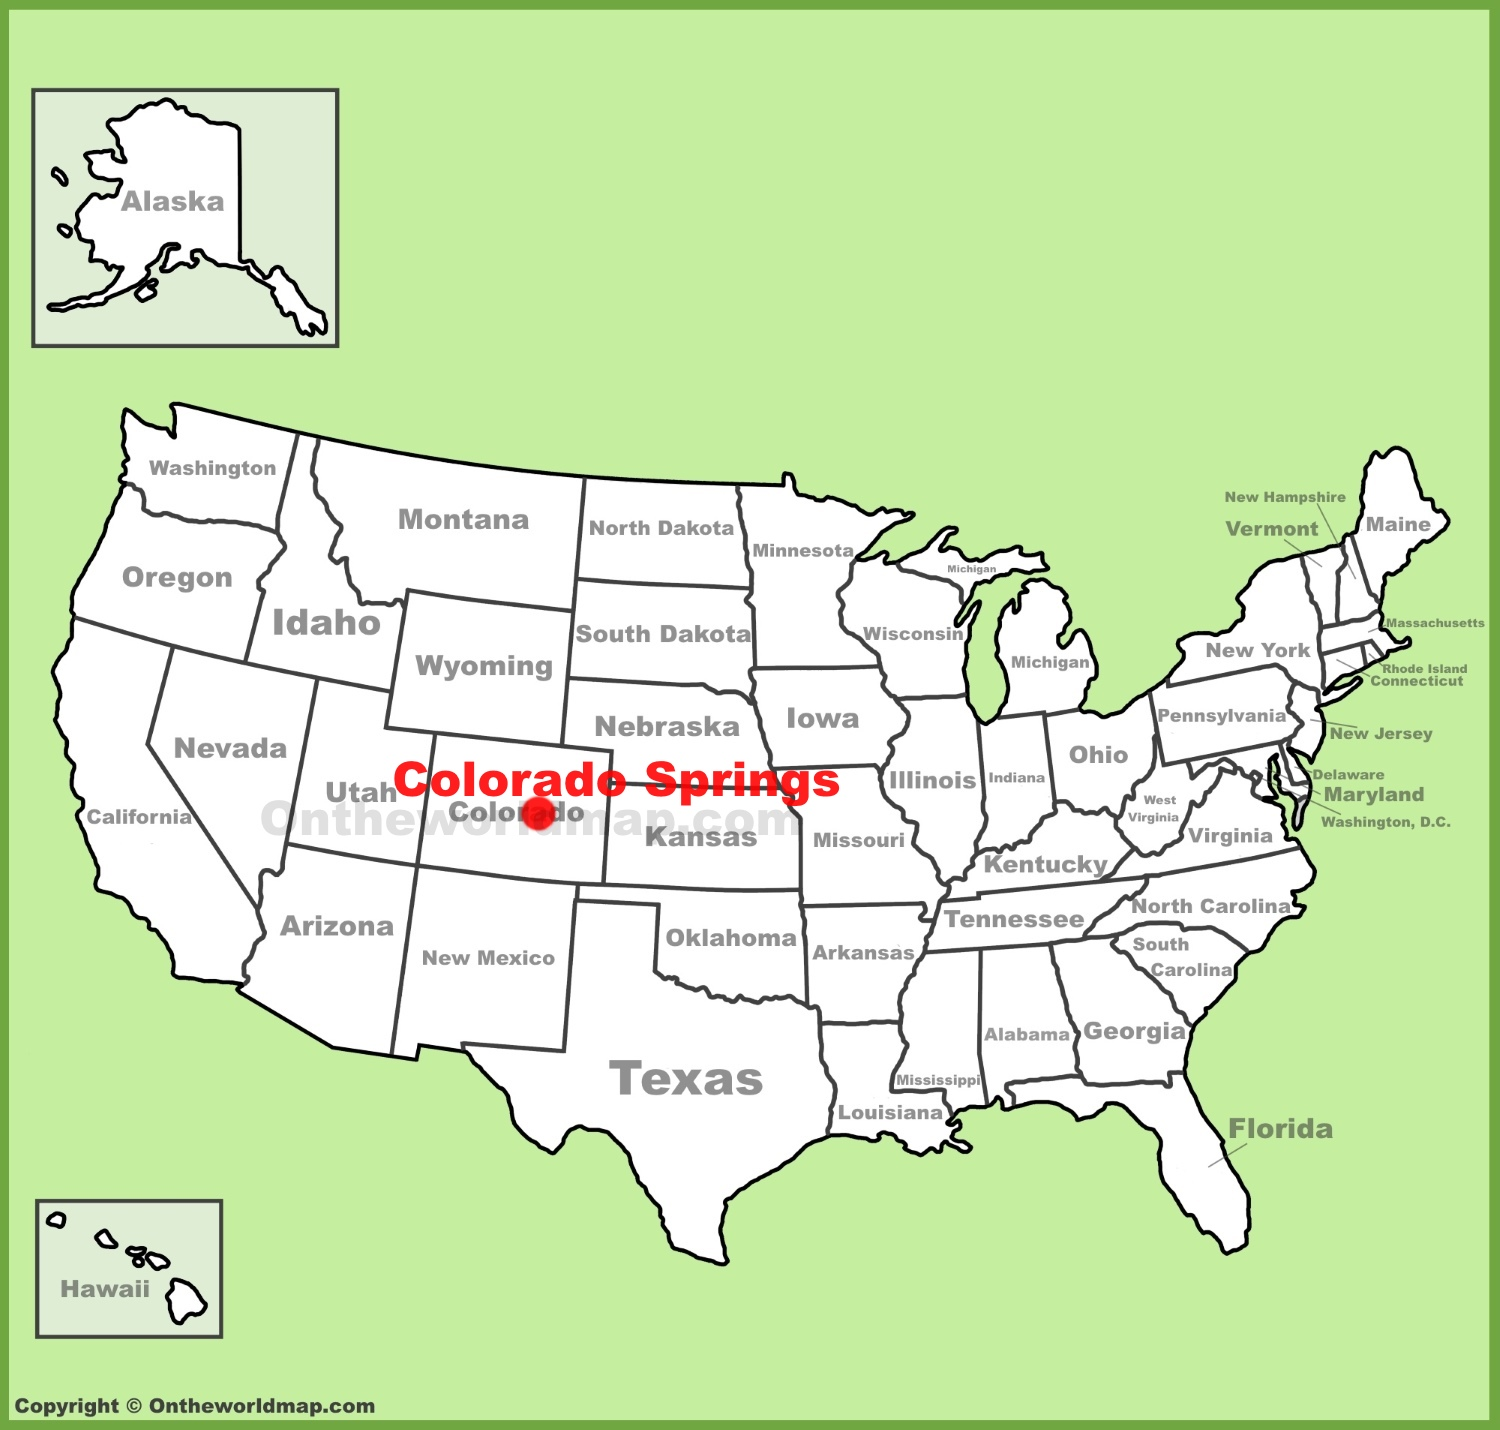 Map Of Colorado Springs Colorado Springs location on the U.S. Map Map Of Colorado Springs